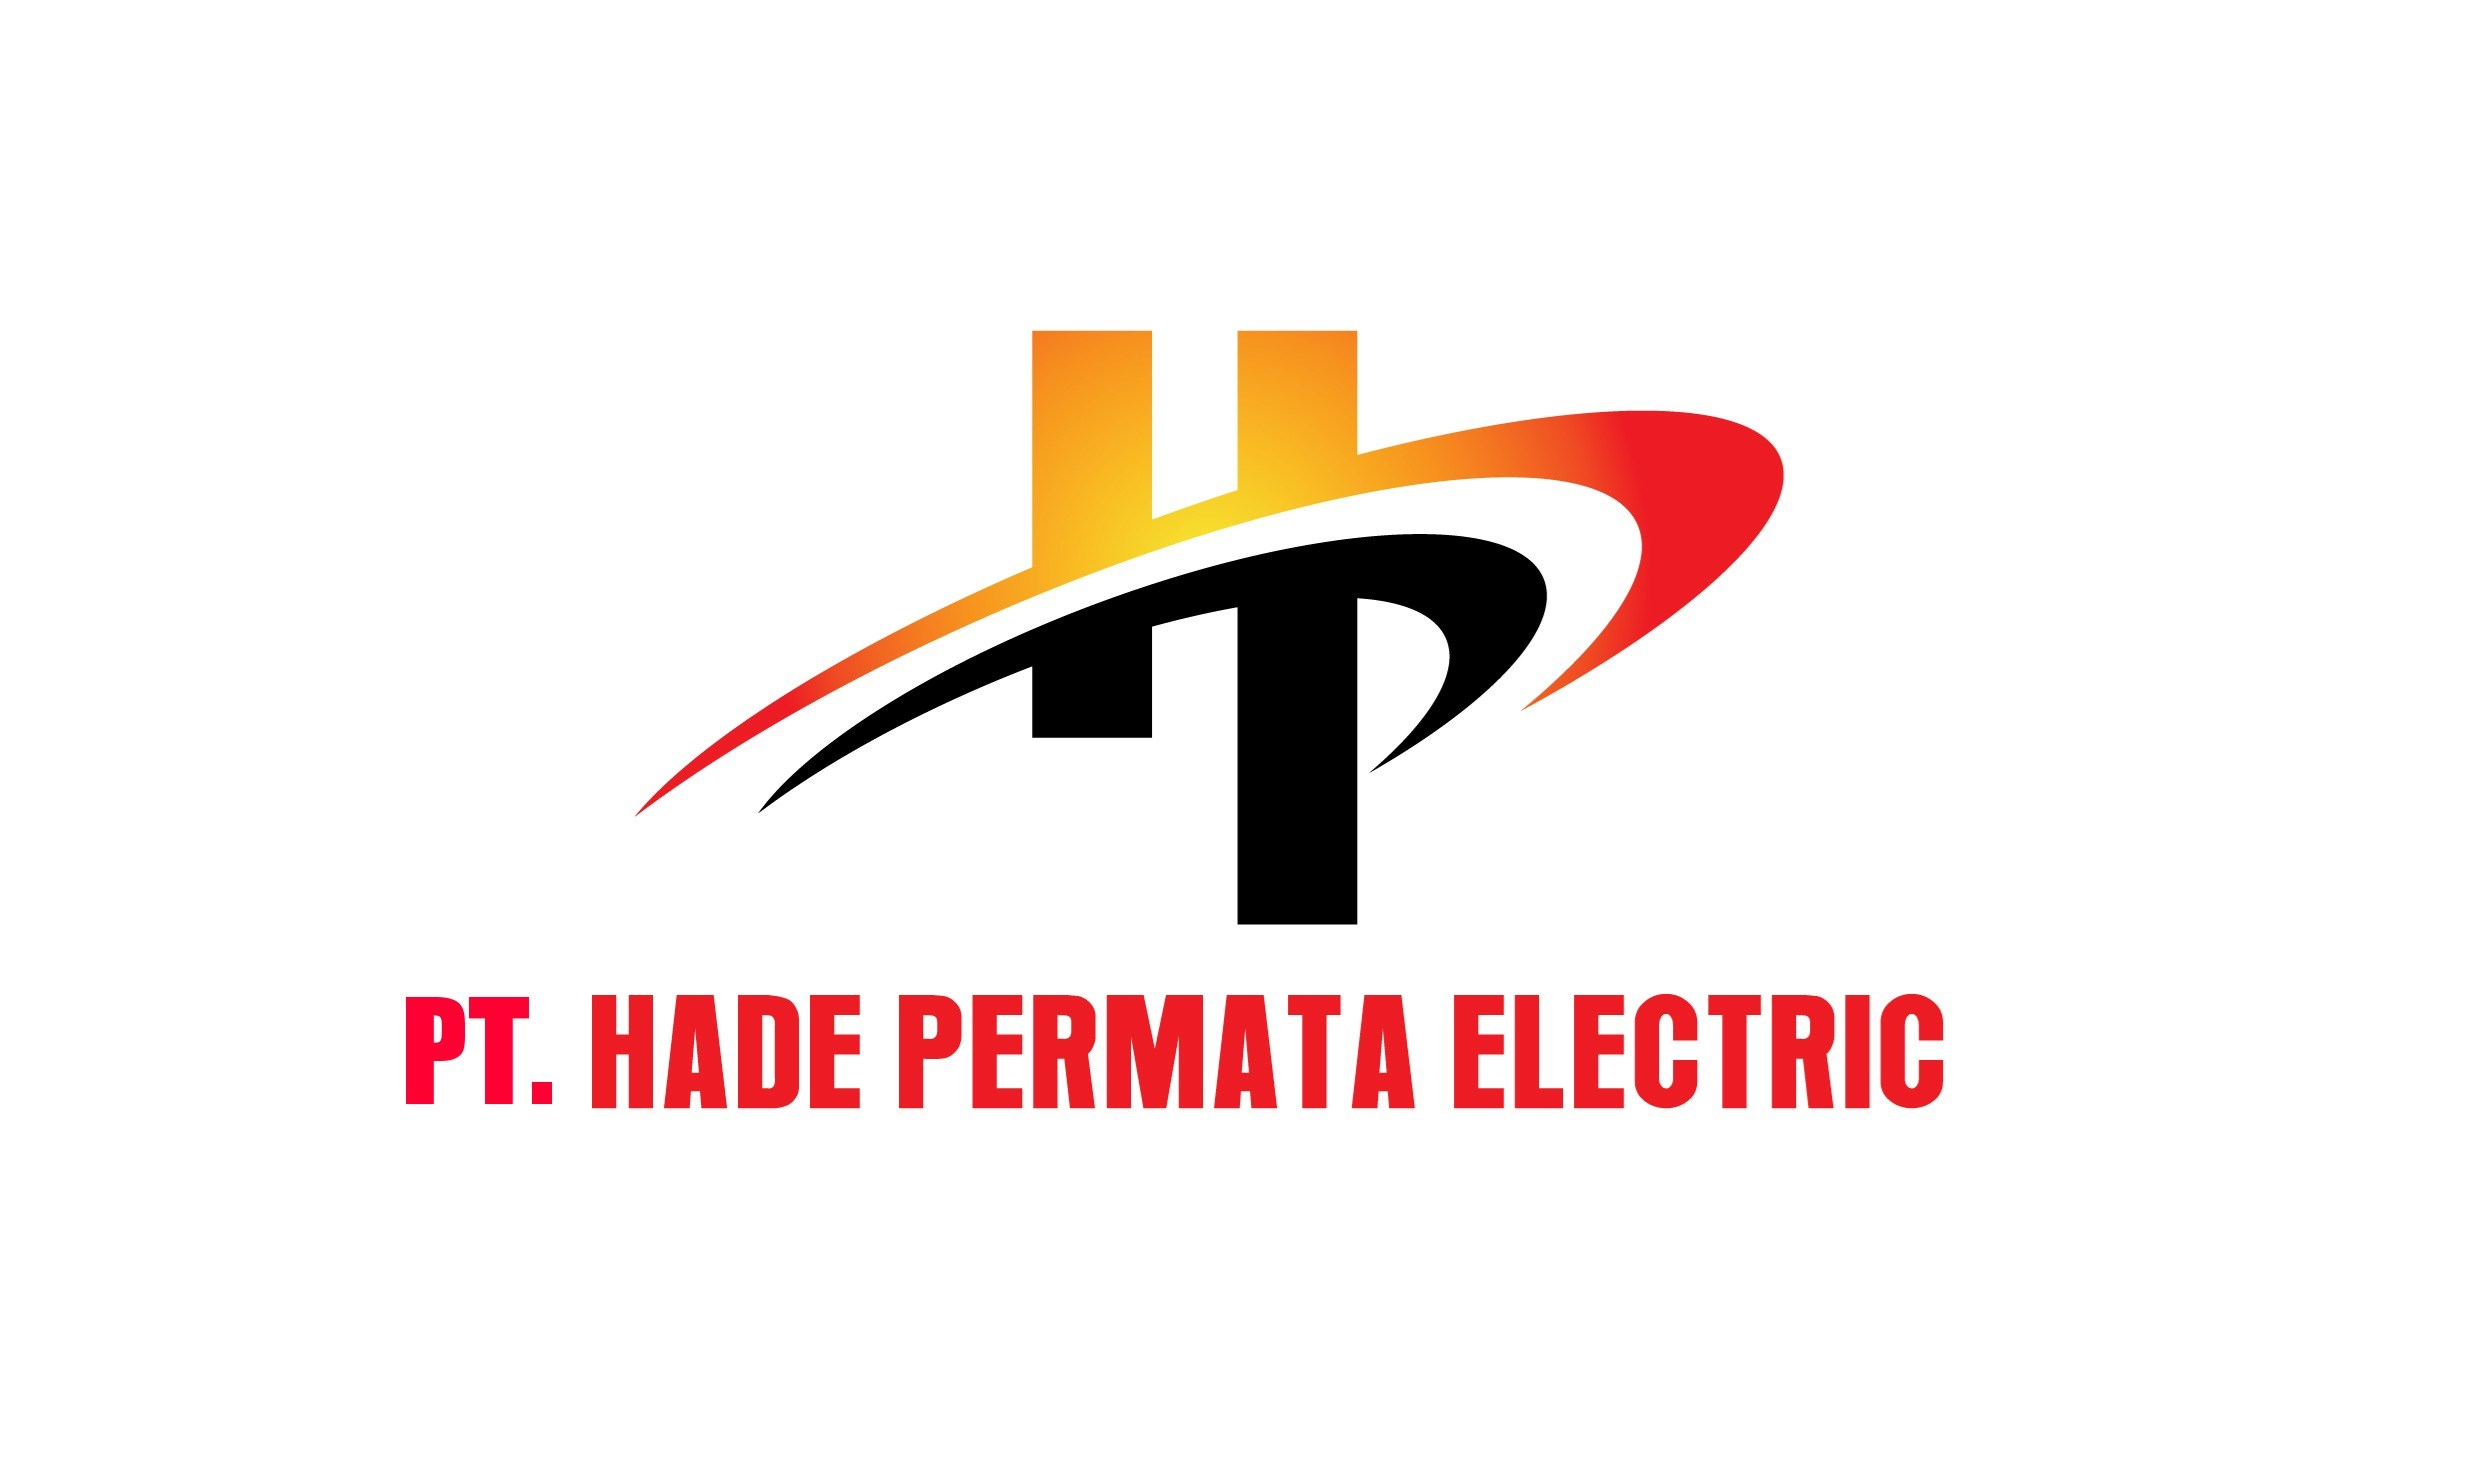 Hade Permata Electric